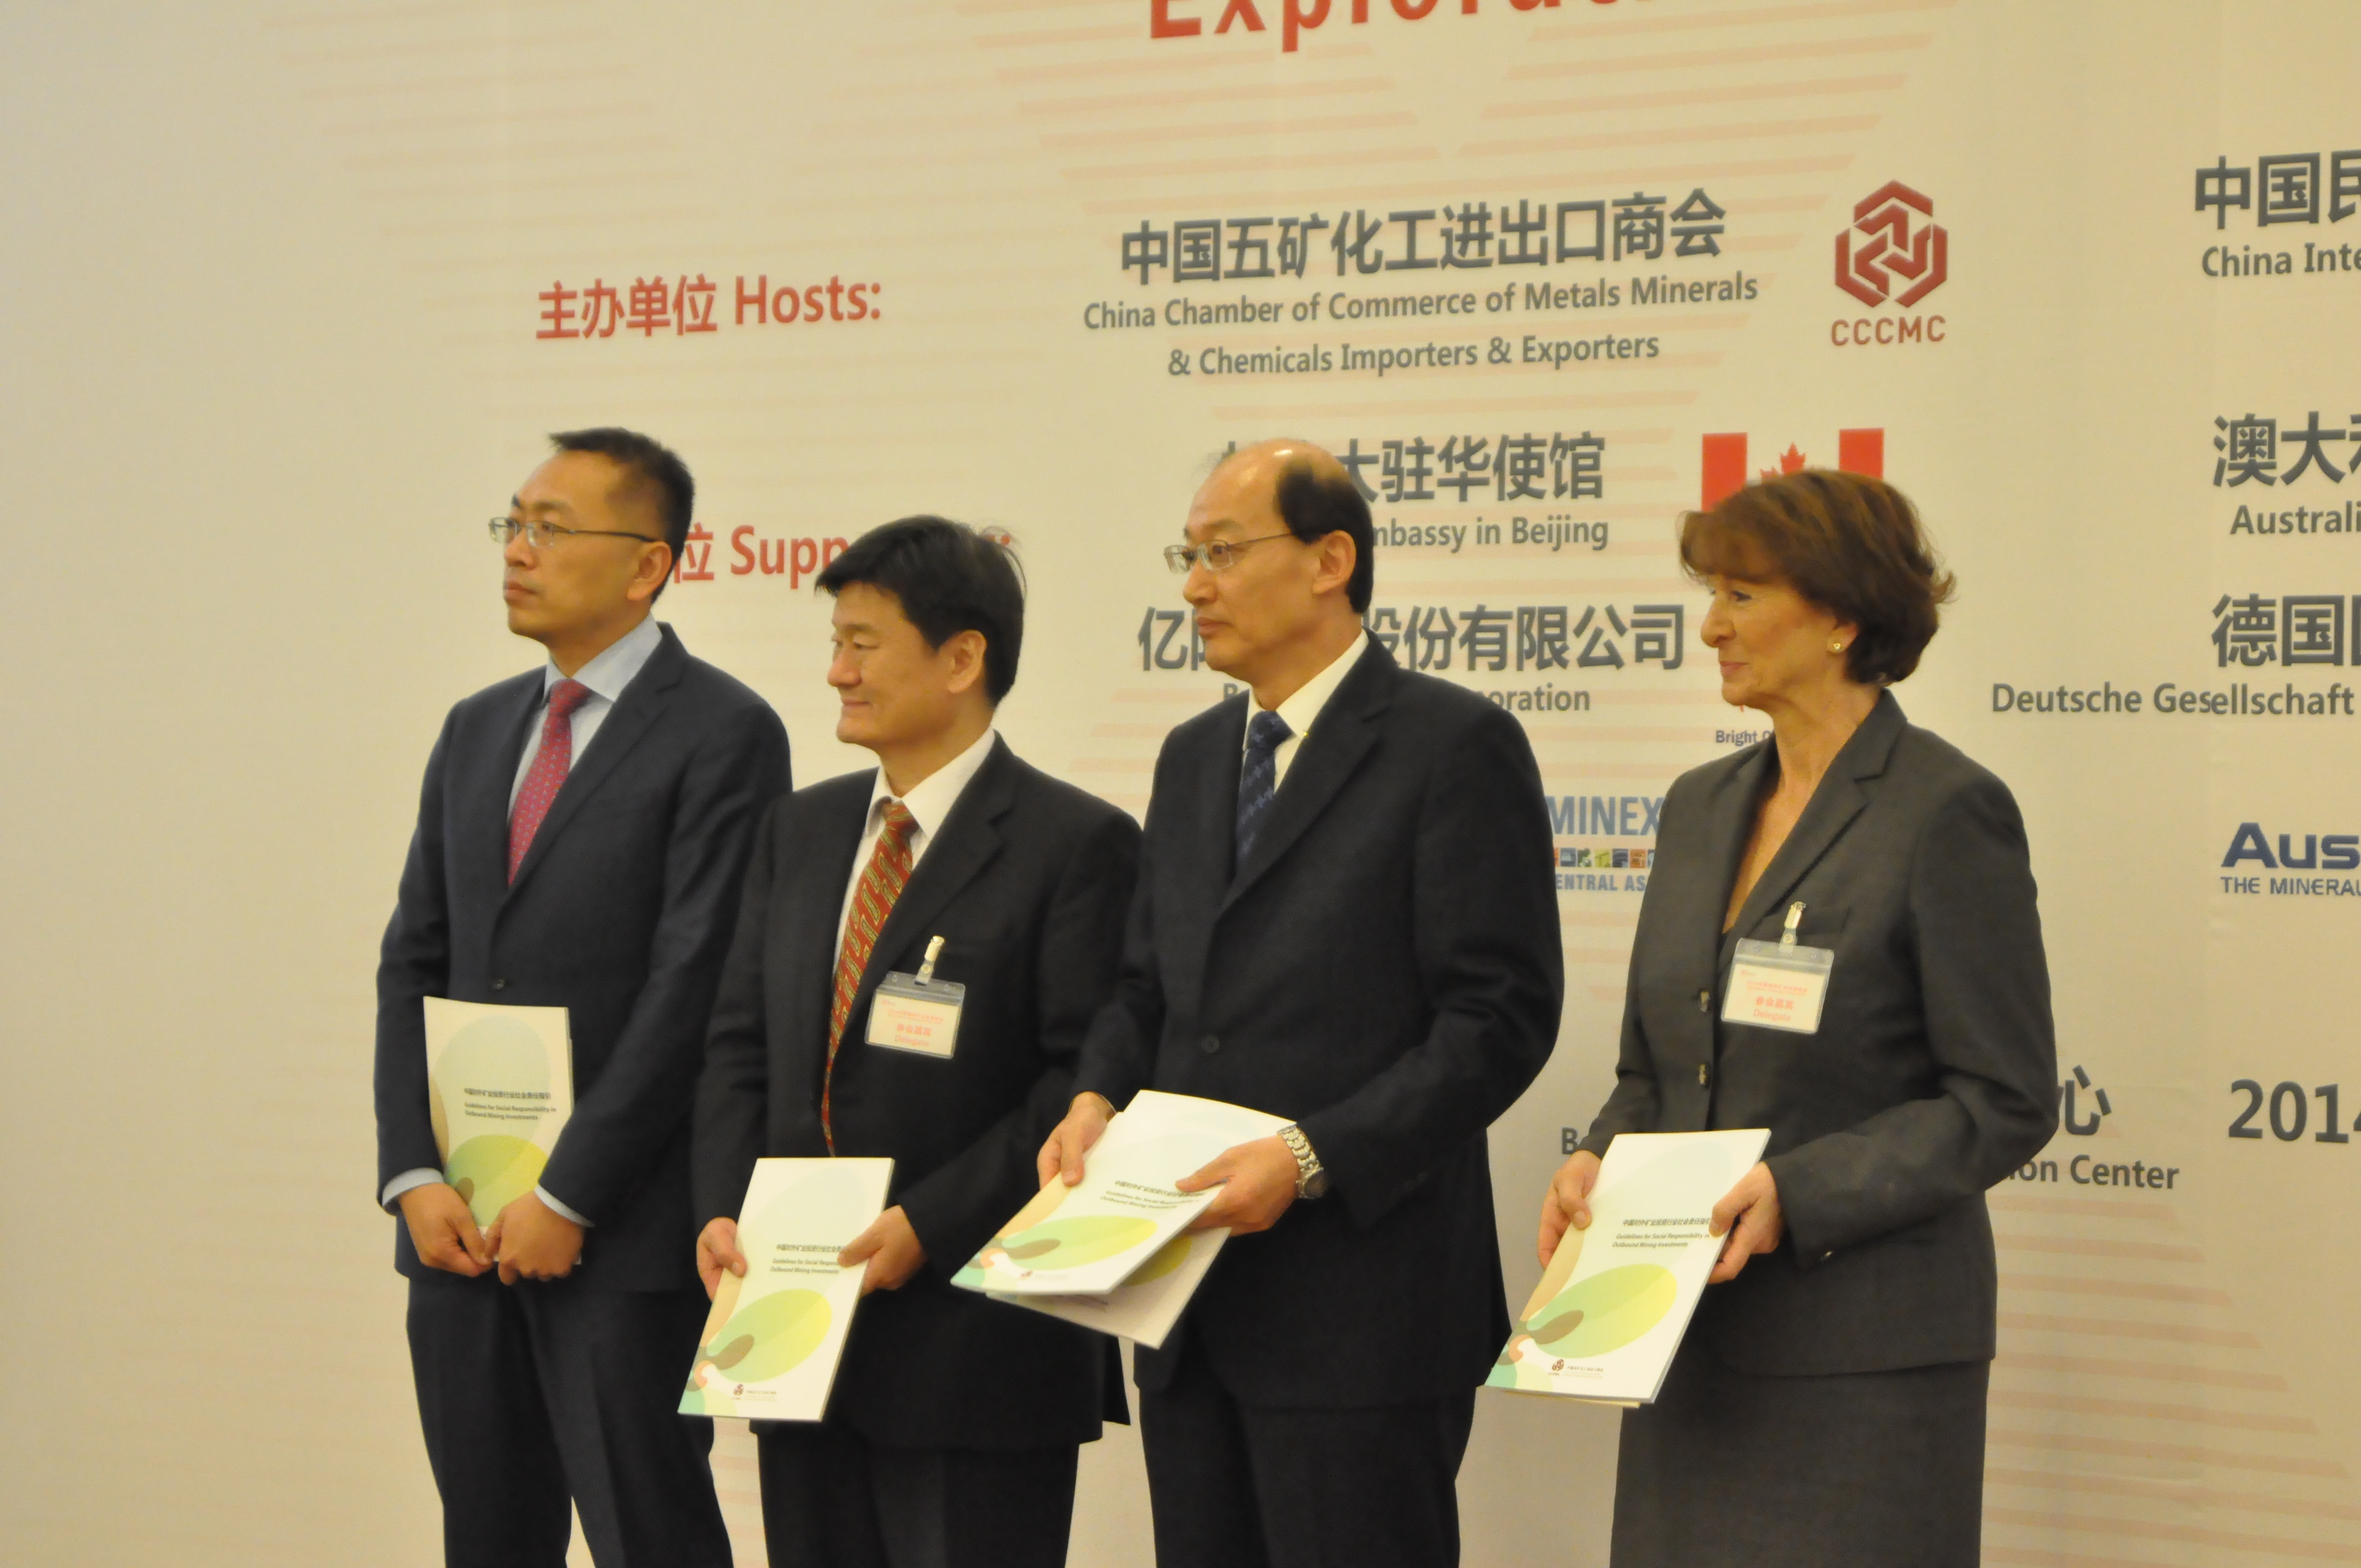 Launch of Guidelines for Responsible Outbound Mining Investment | 2014